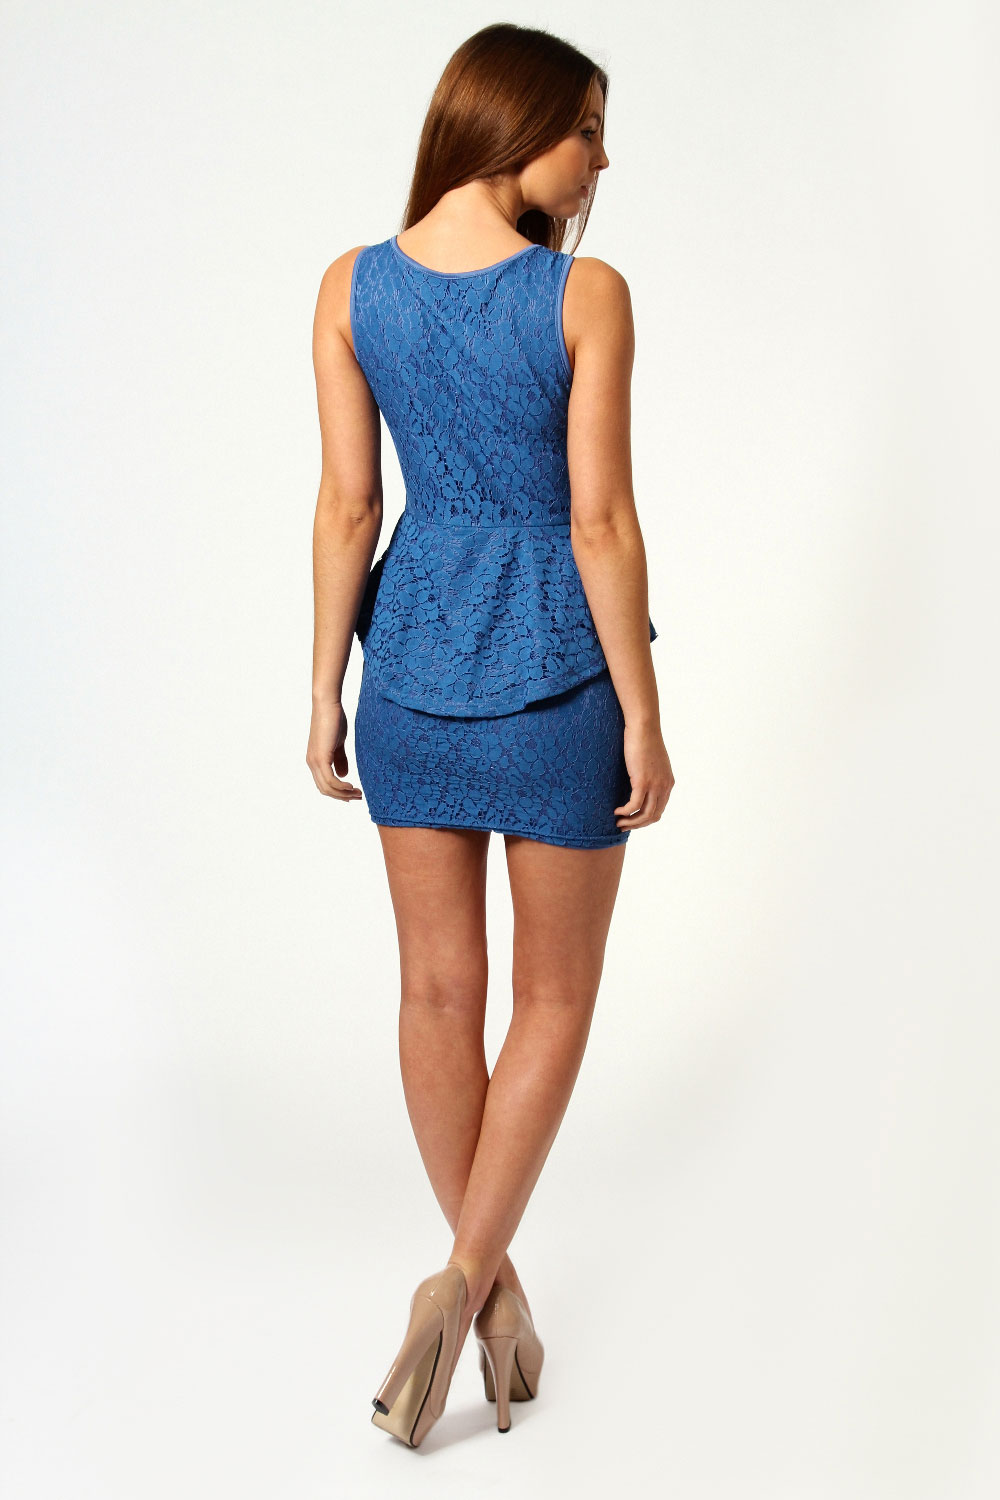 Chloe Crochet Lace Peplum Dress